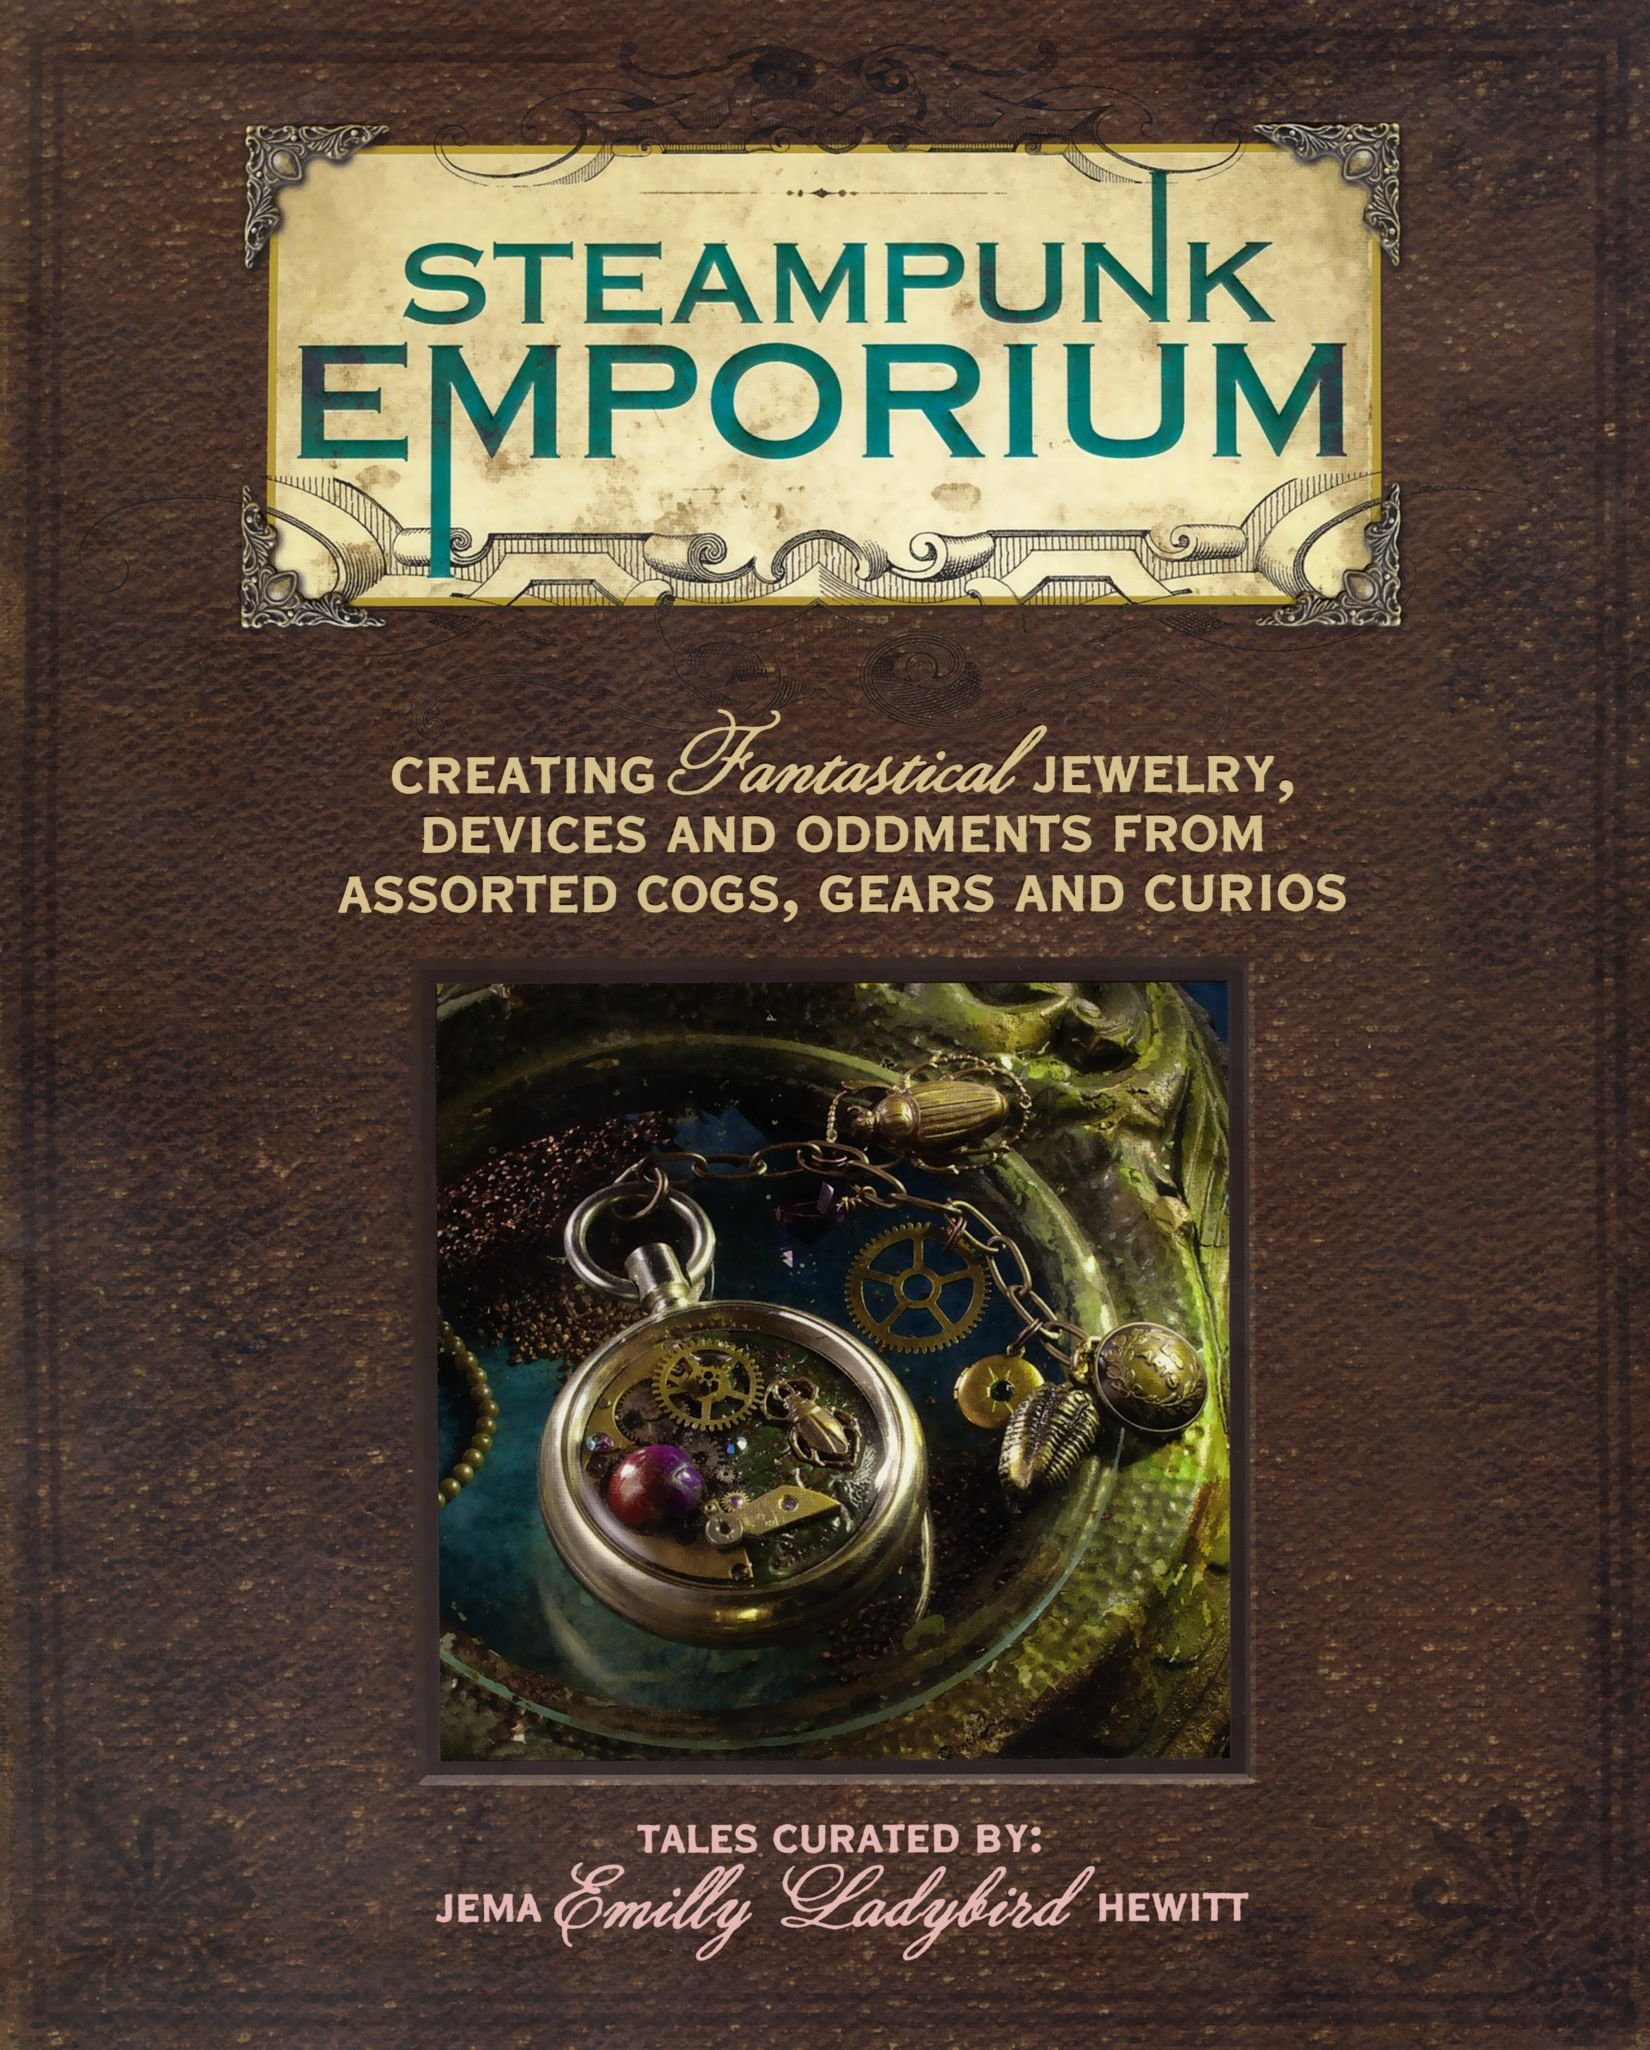 steampunk-emporium-creating-fantastical-jewelry-devices-and-oddments-from-assorted-cogs-gears-and-curios